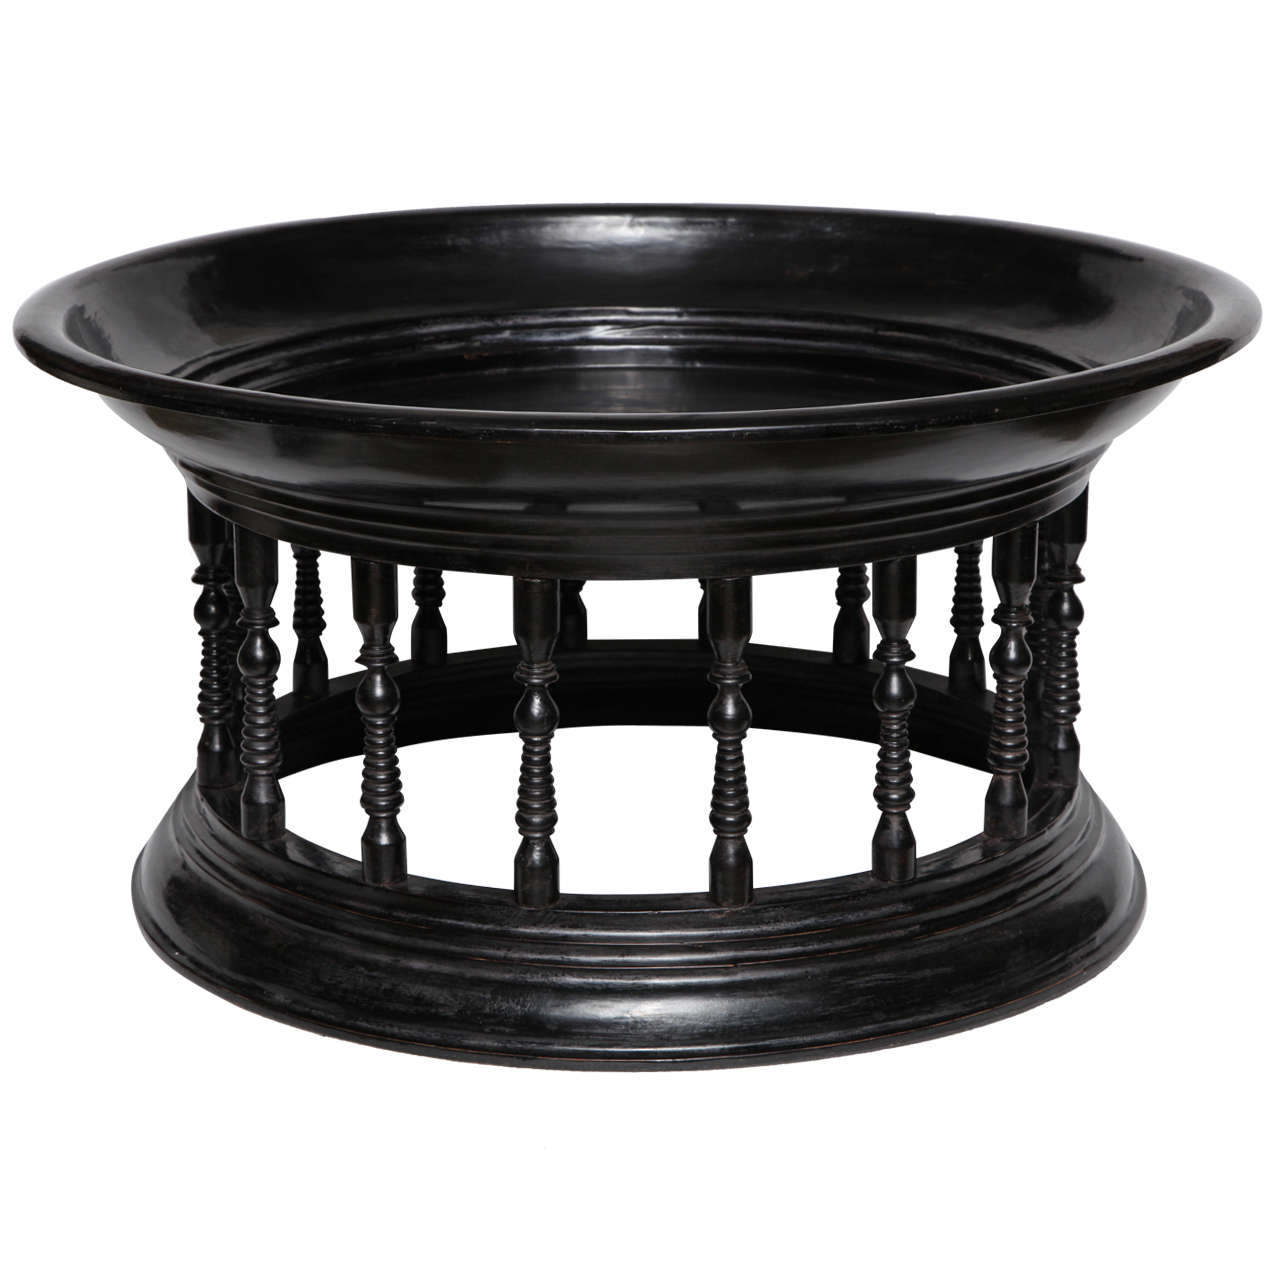 Low Tables For Sale Black Lacquered Low Table For Sale At 1stdibs